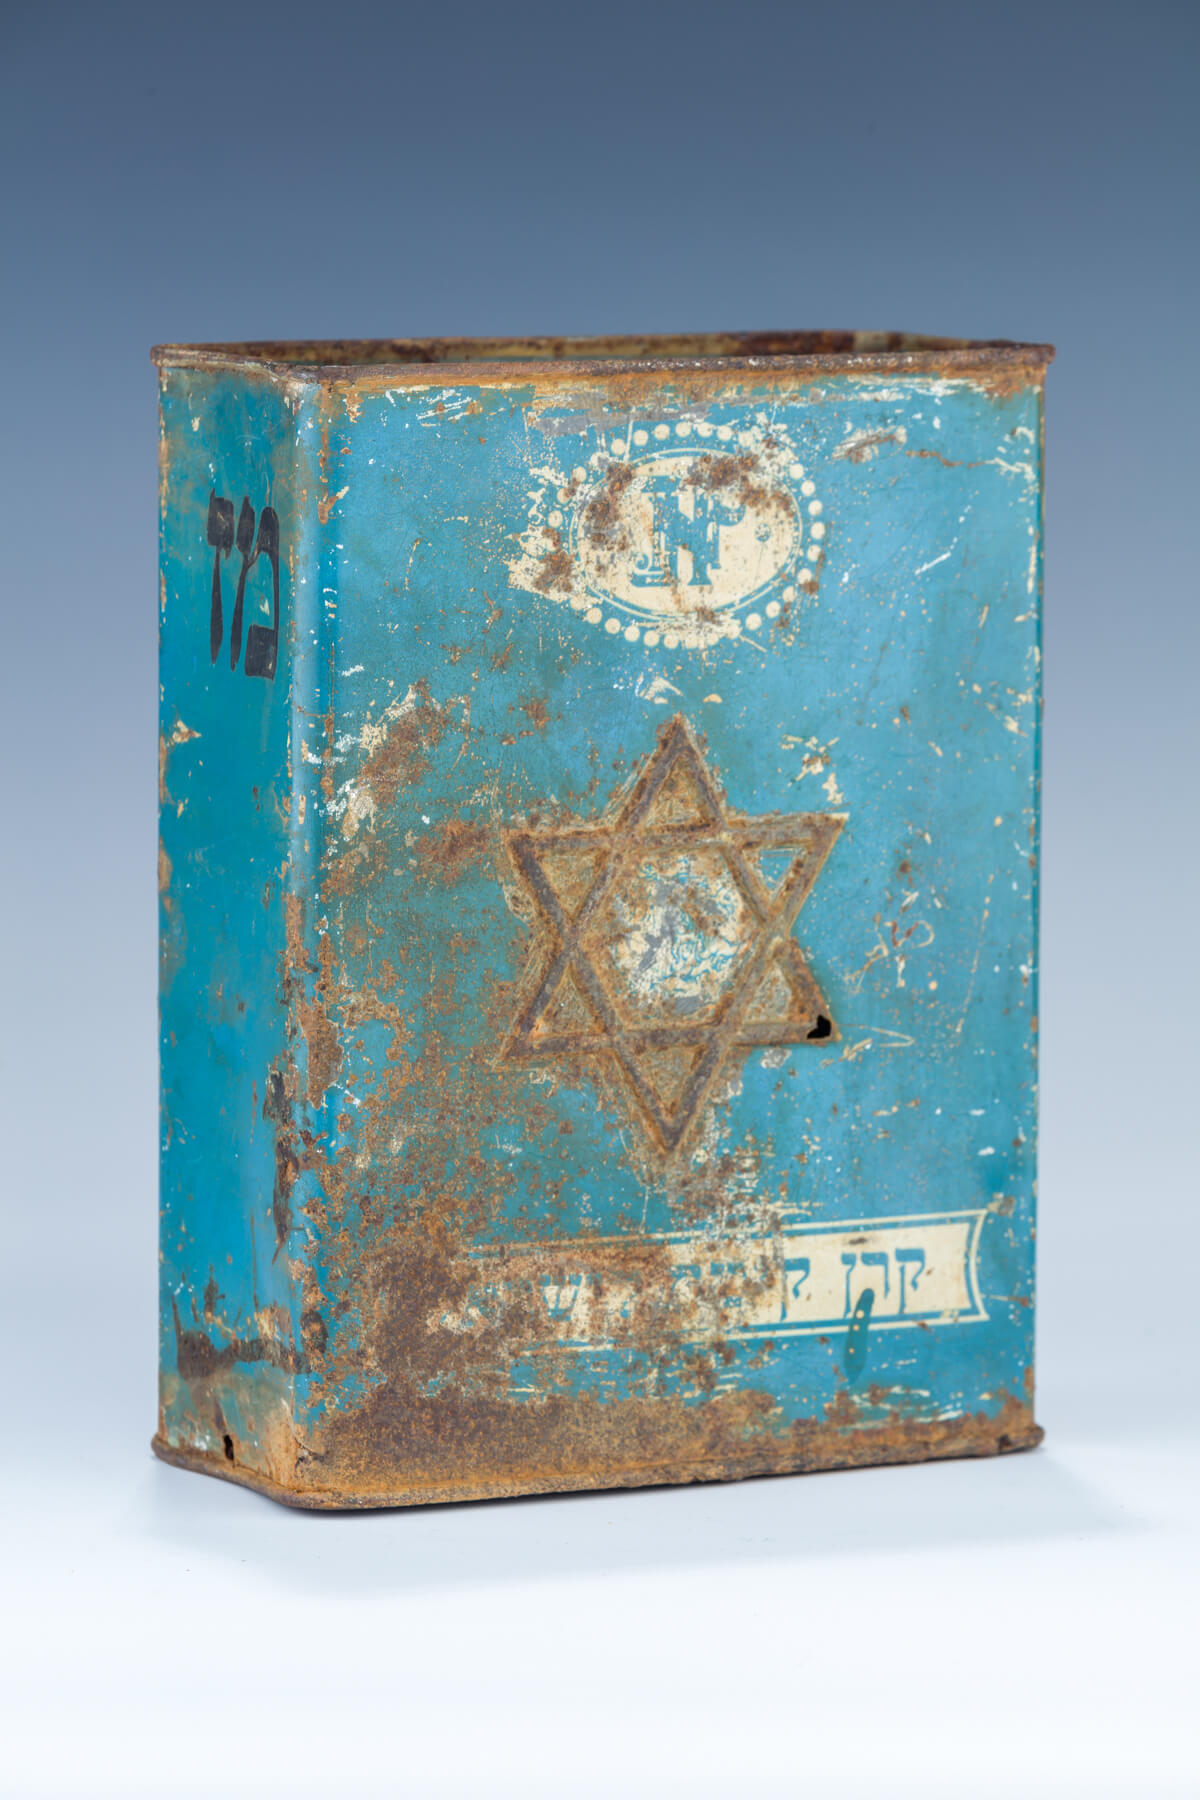 14. A Large And Early Jnf/Kkl Collection Box